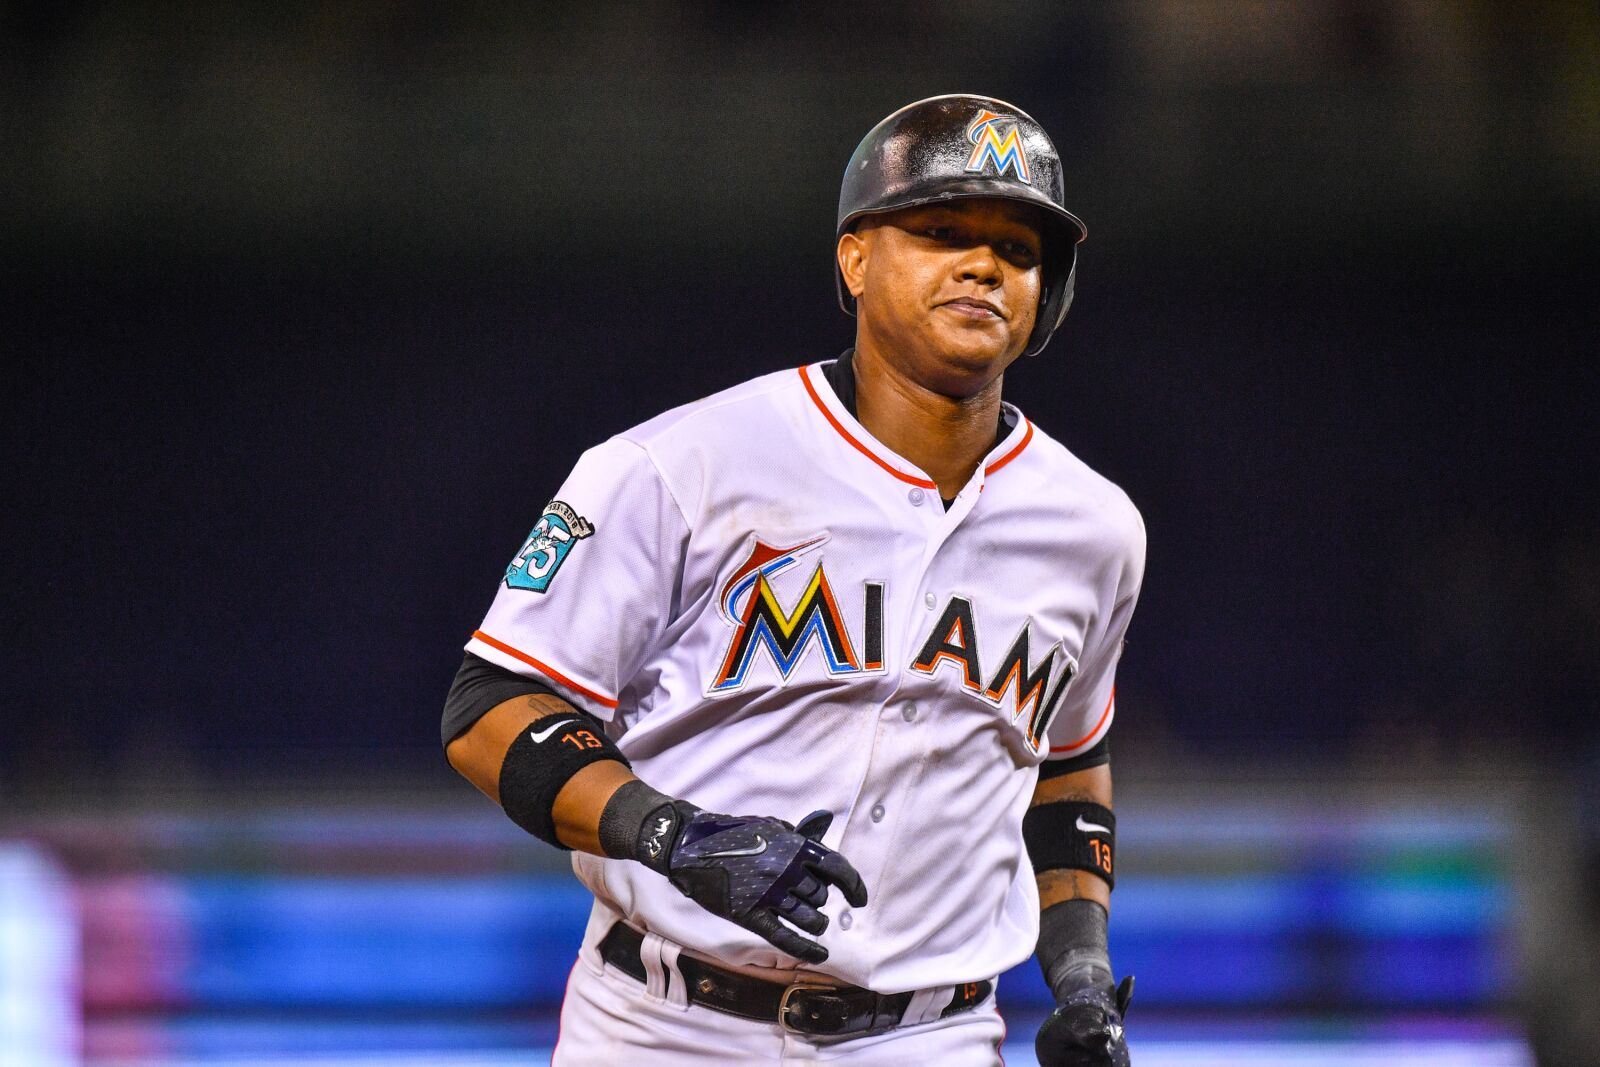 brand new ecac5 eab9e Does Starlin Castro Have a Future With the Miami Marlins?